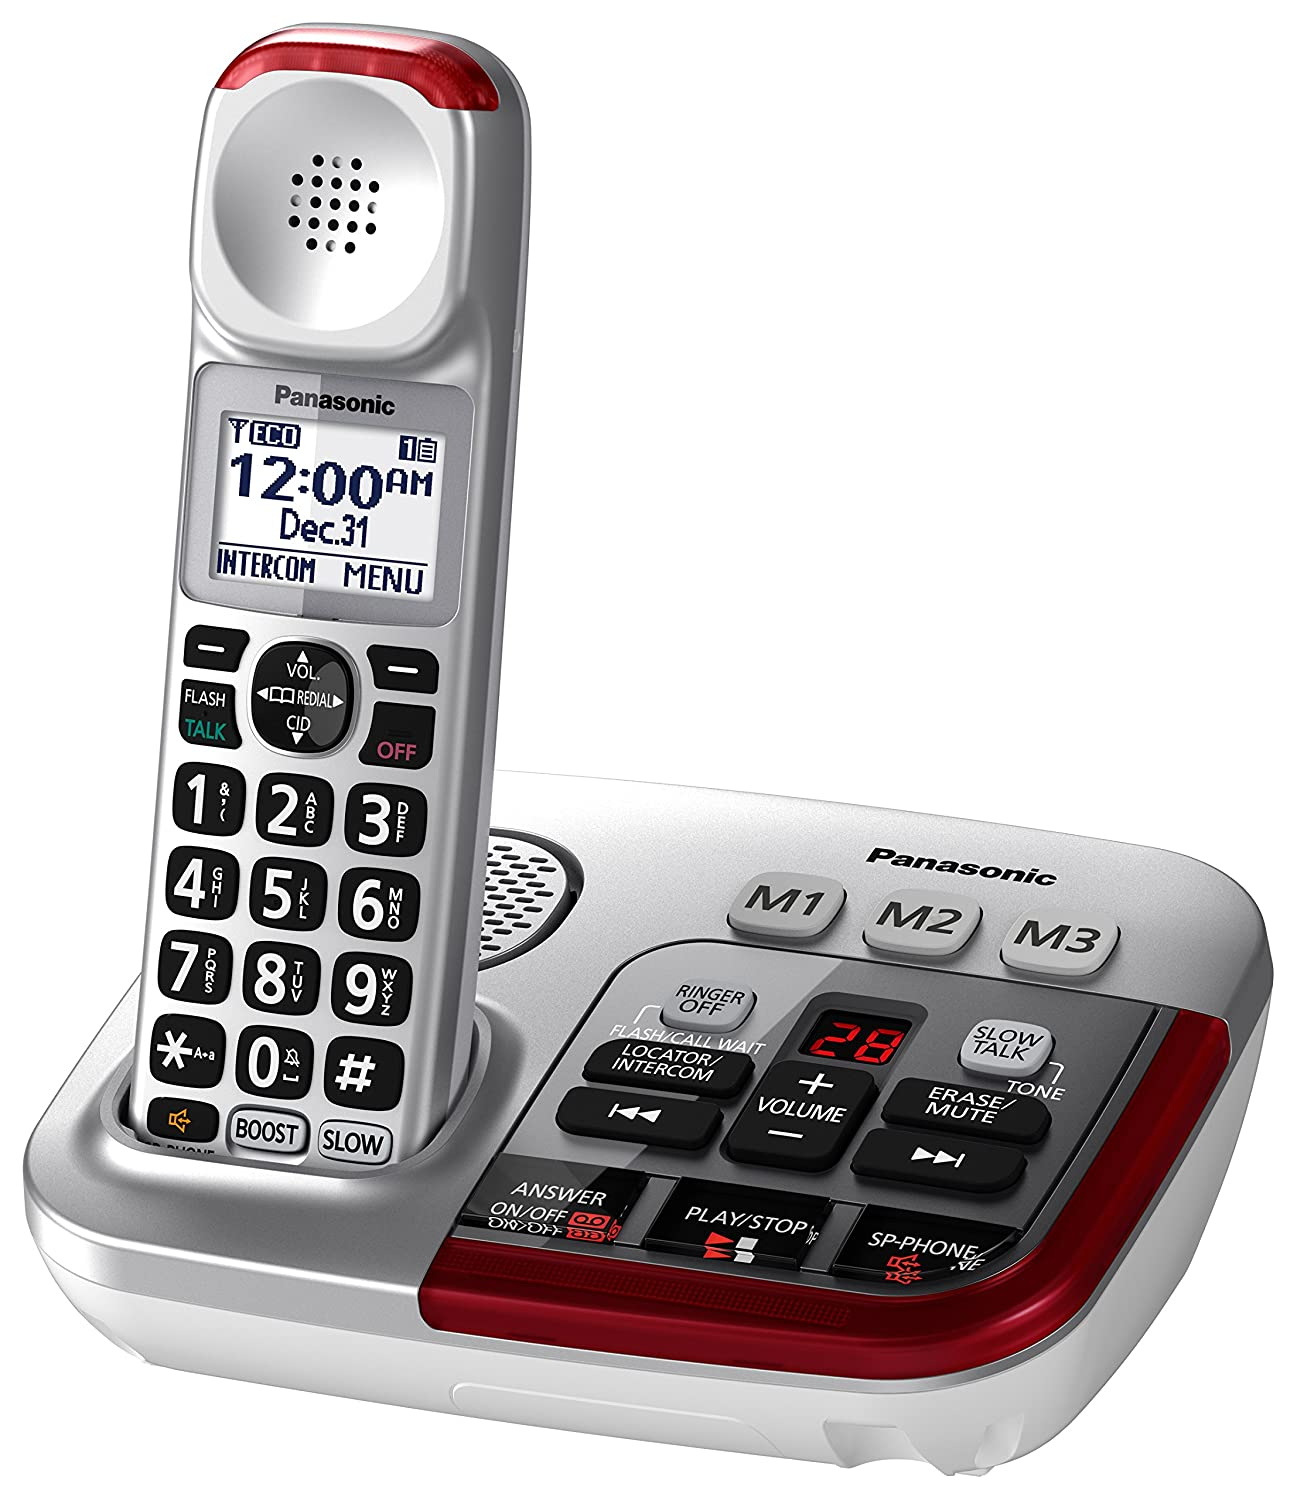 amazon com panasonic kx tgm450s amplified cordless phone with rh amazon com Panasonic Cordless Phones DECT 6.0 Remote Panasonic Phones